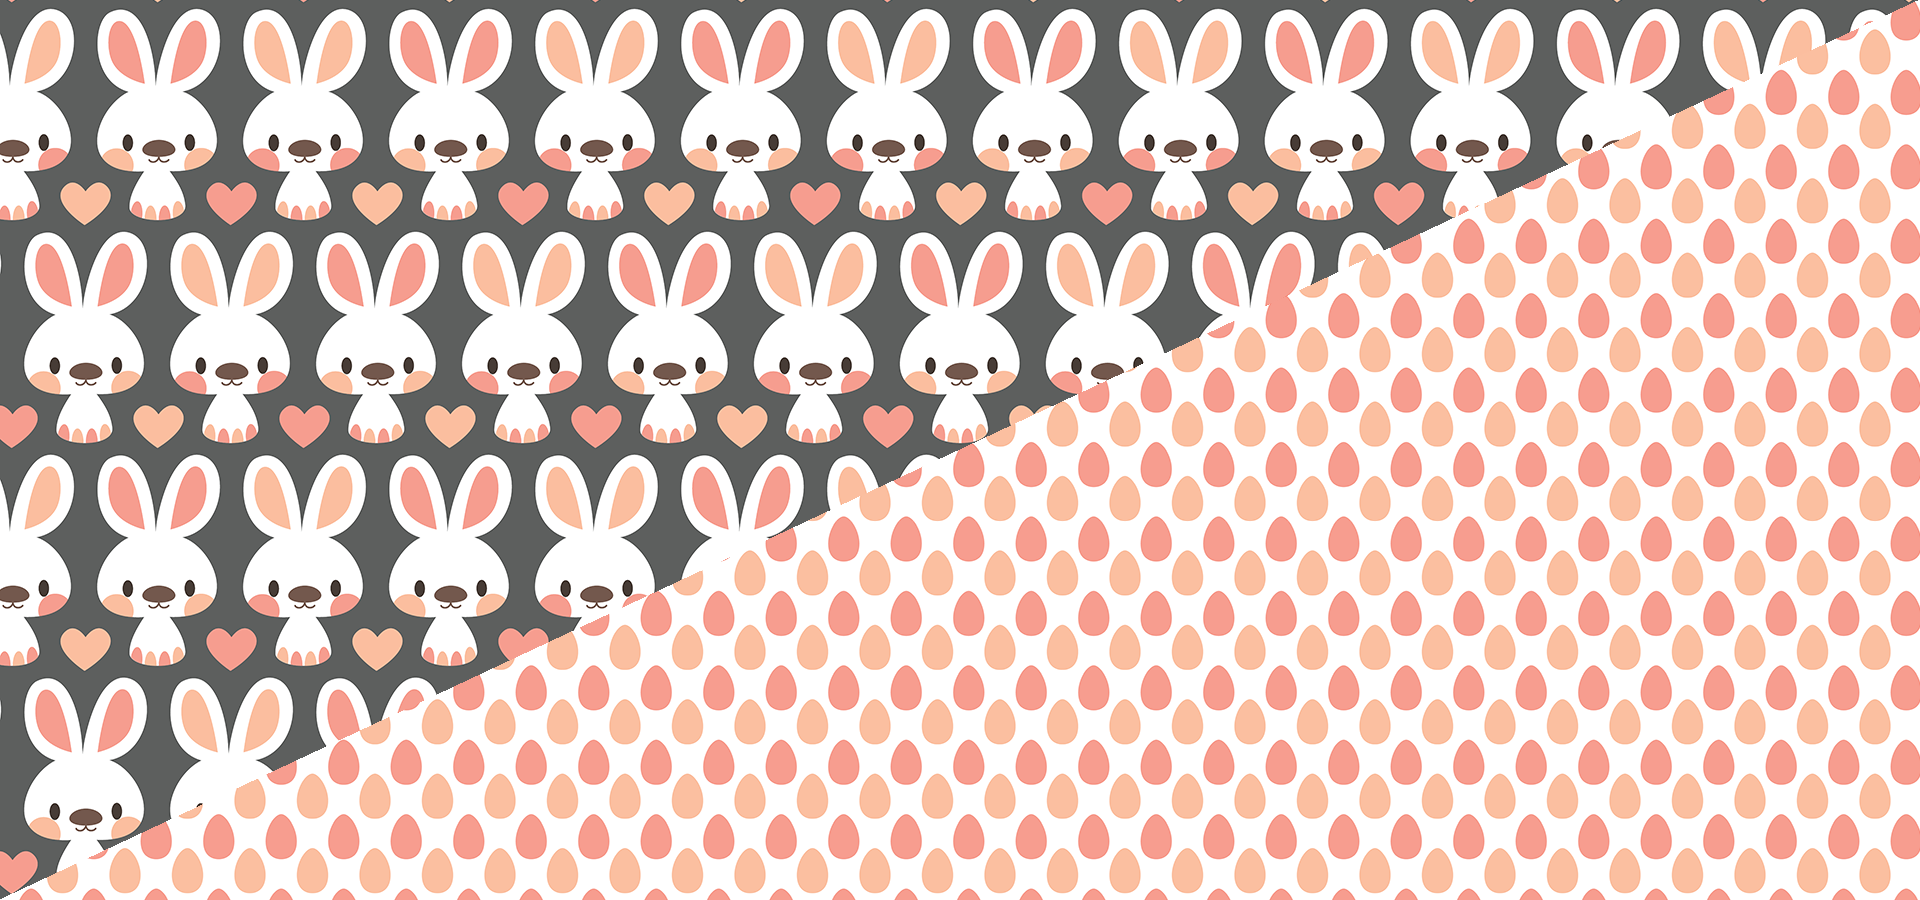 cute-little-bunnies-pattern-collection-by-petits-pixels